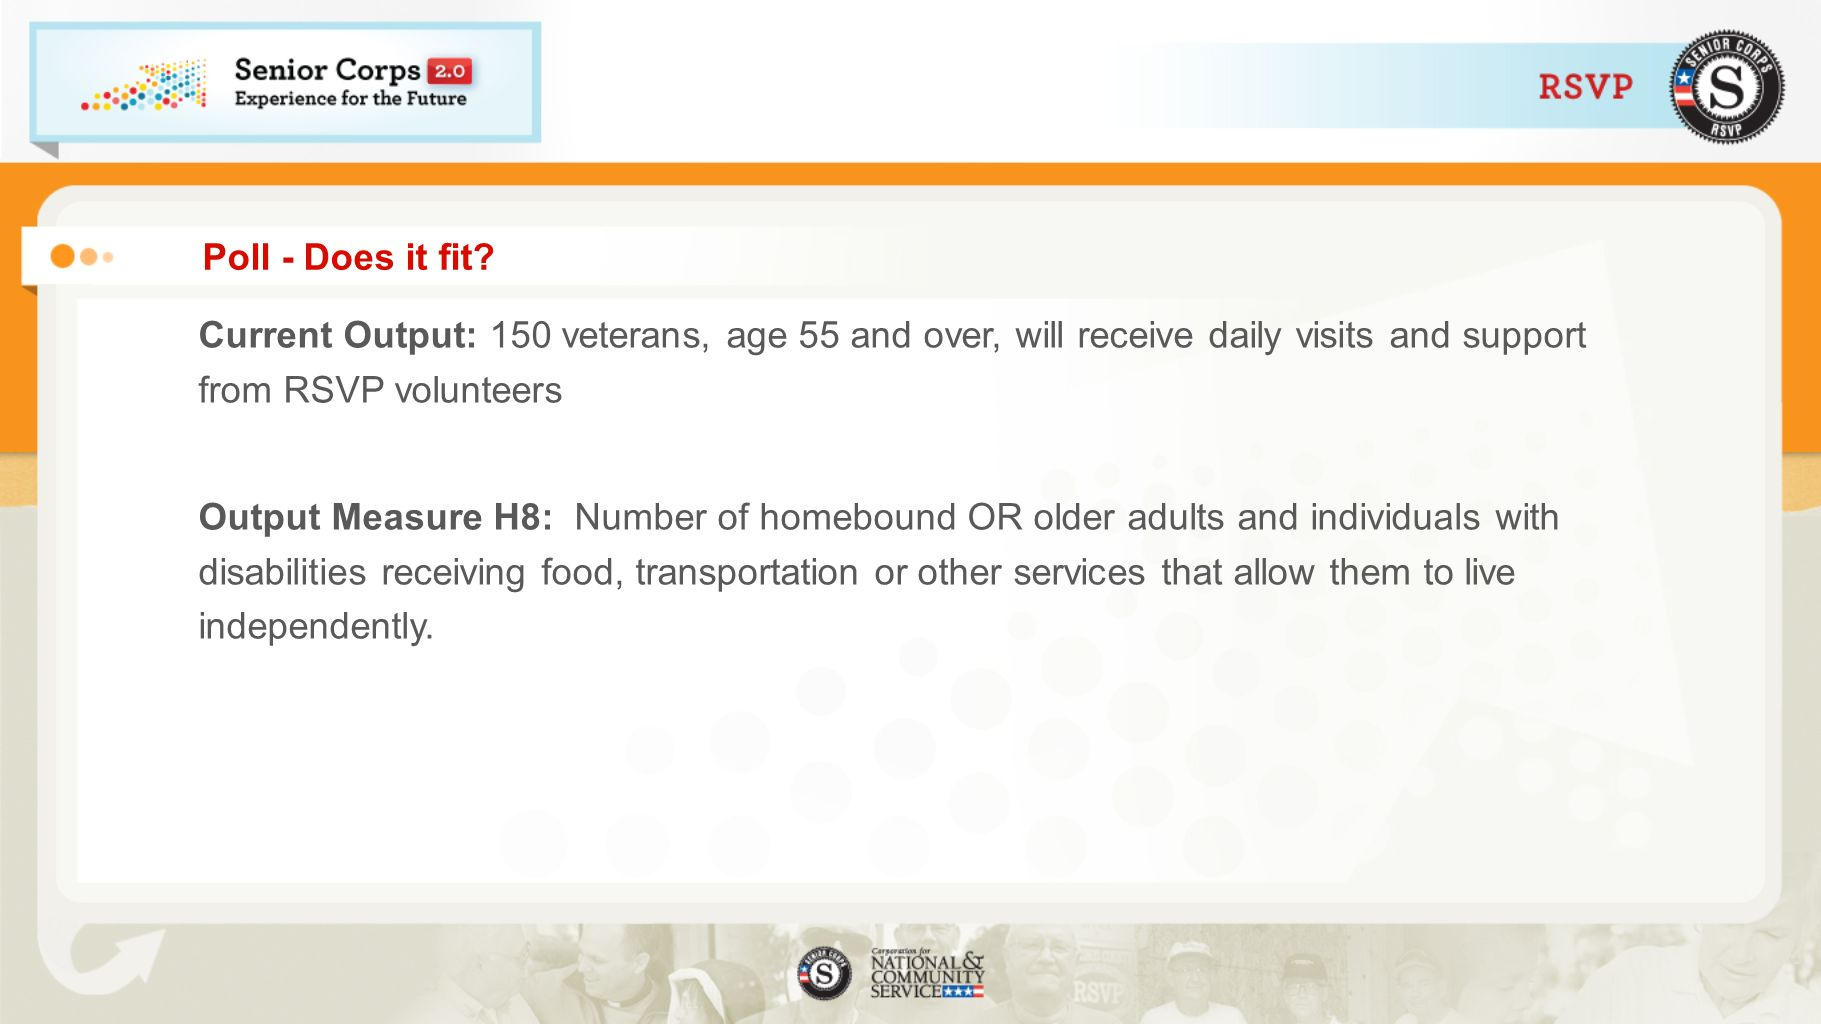 Poll - Does it fit Current Output: 150 veterans, age 55 and over, will receive daily visits and support from RSVP volunteers.